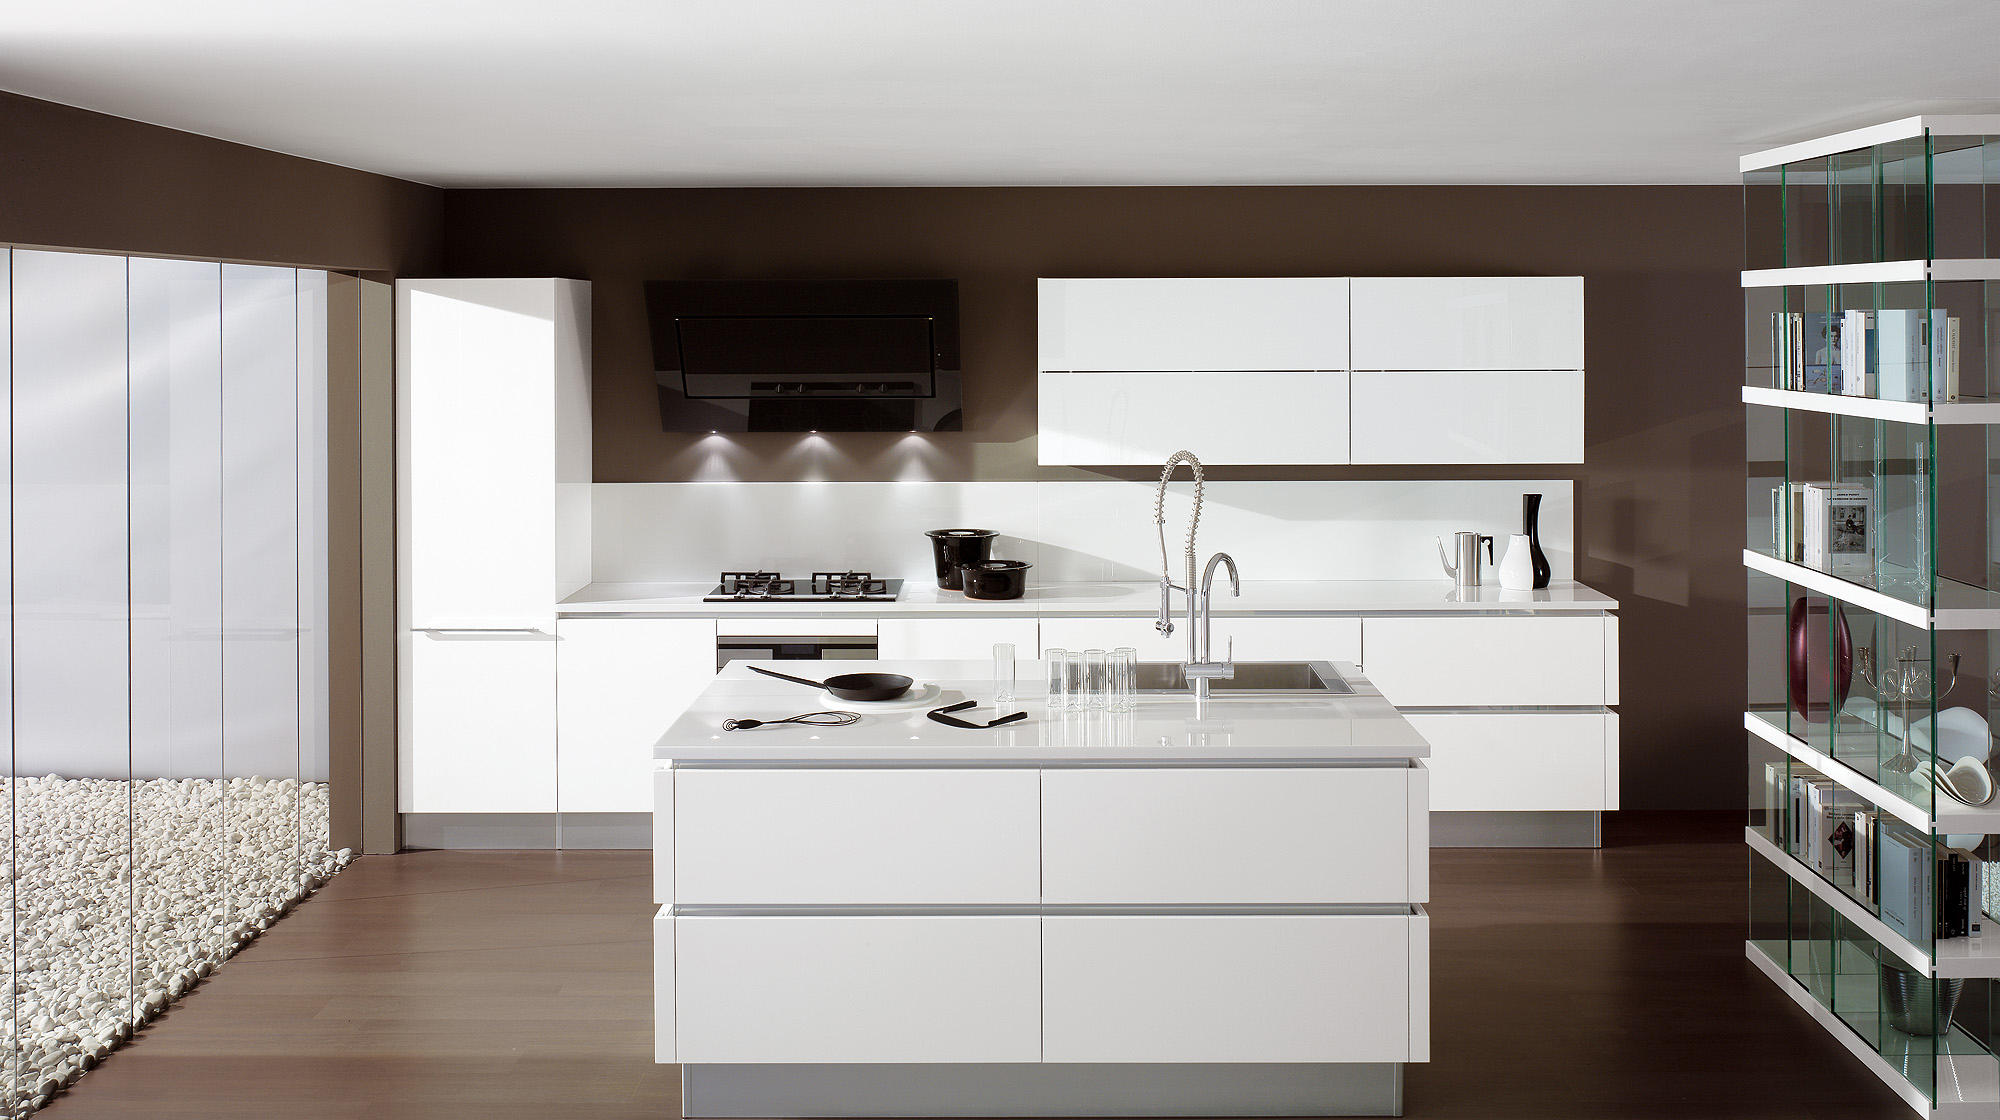 Oyster island kitchens from veneta cucine architonic - Veneta cucine oyster ...